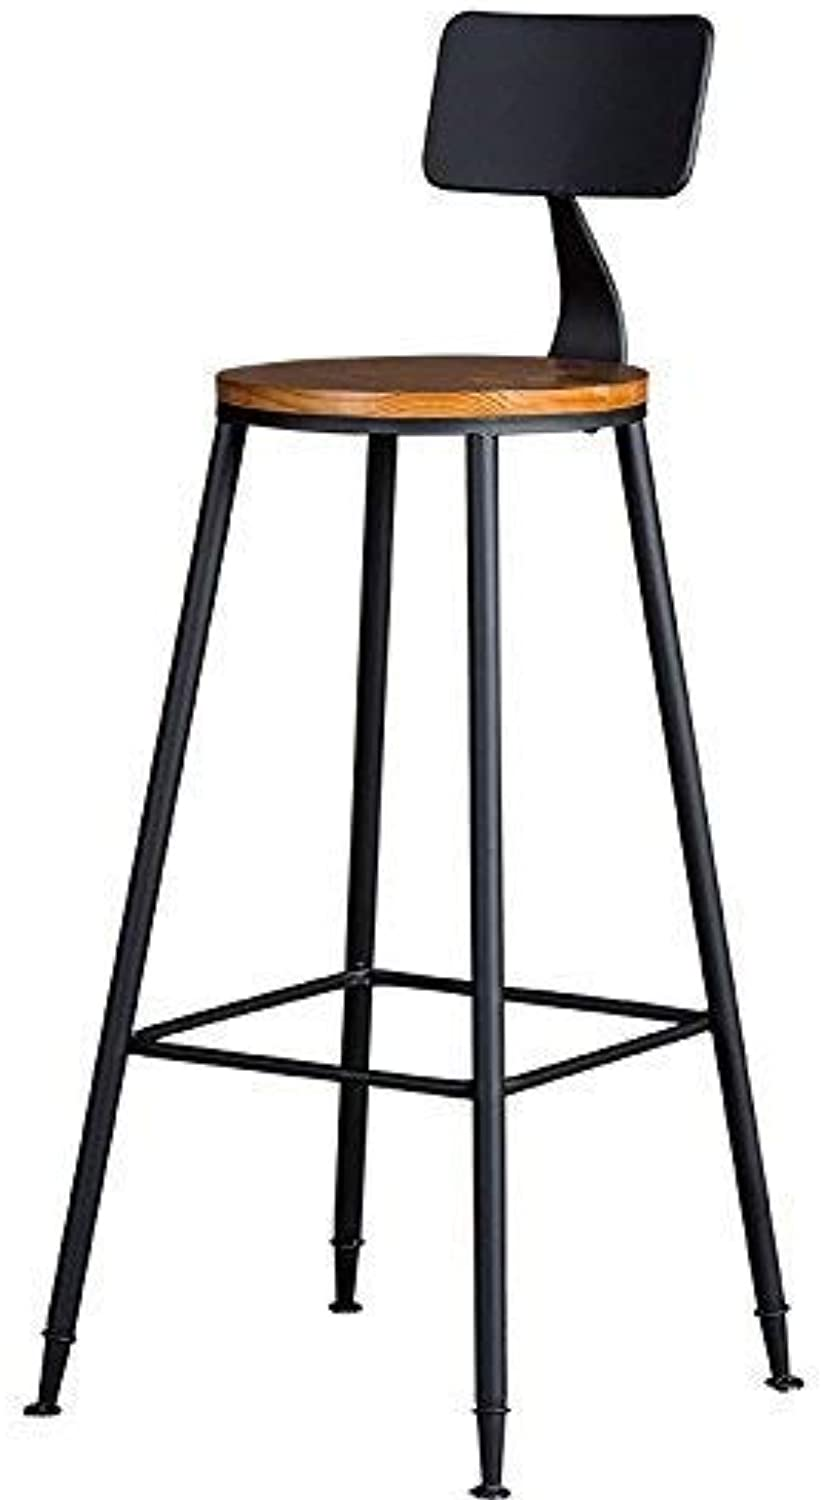 Juexianggou Chair - Retro Bar Stool Iron Bar Chair Table Bar Chair Restaurant Ktv Solid Wood High Table Round Table Backrest High Bar Chair Adult Home Stool Foot Stool for Bedroom